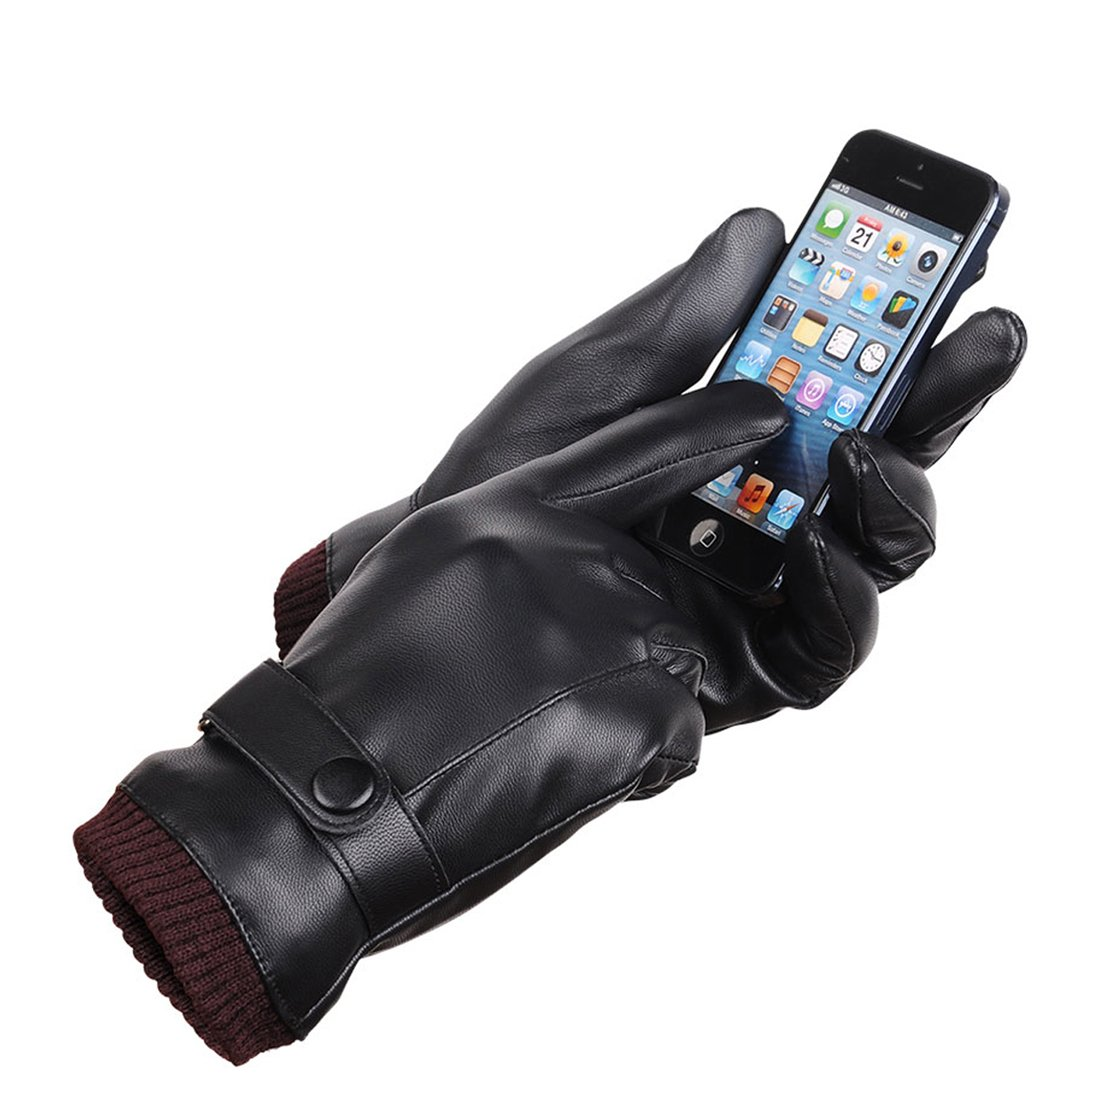 LAOWWO PU Leather Touchscreen Gloves Driving Gloves Black Winter Warm Gloves